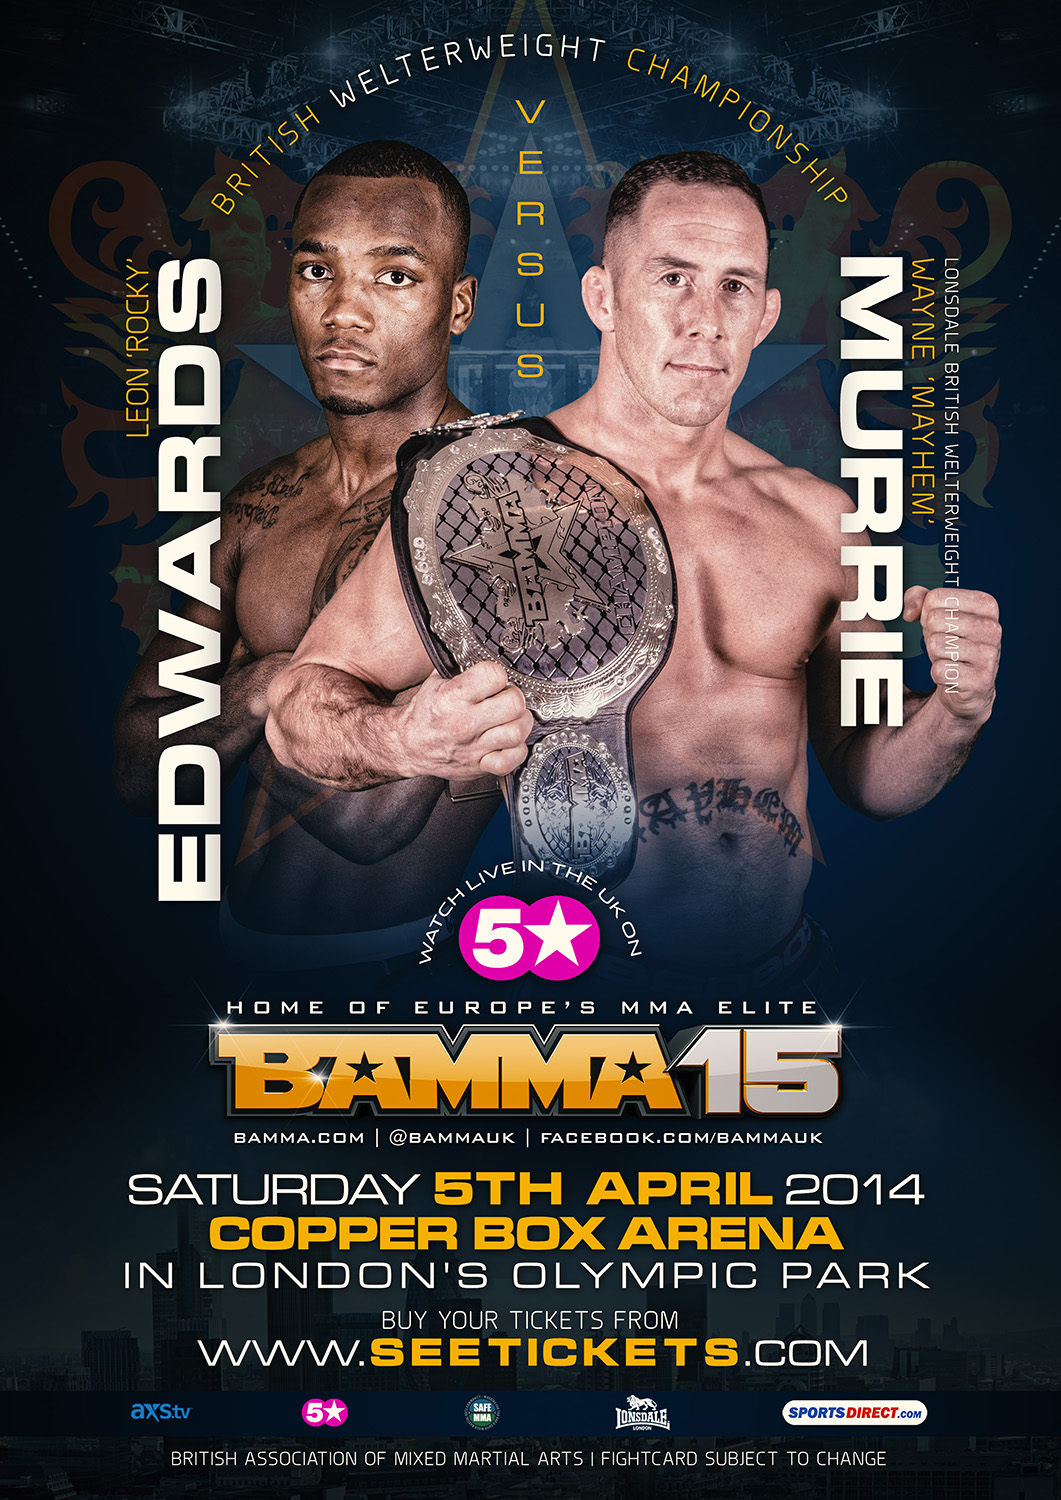 WAYNE MURRIE VS. LEON 'ROCKY' EDWARDS  ADDED TO BAMMA 15 WELTERWEIGHT TITLE FIGHT